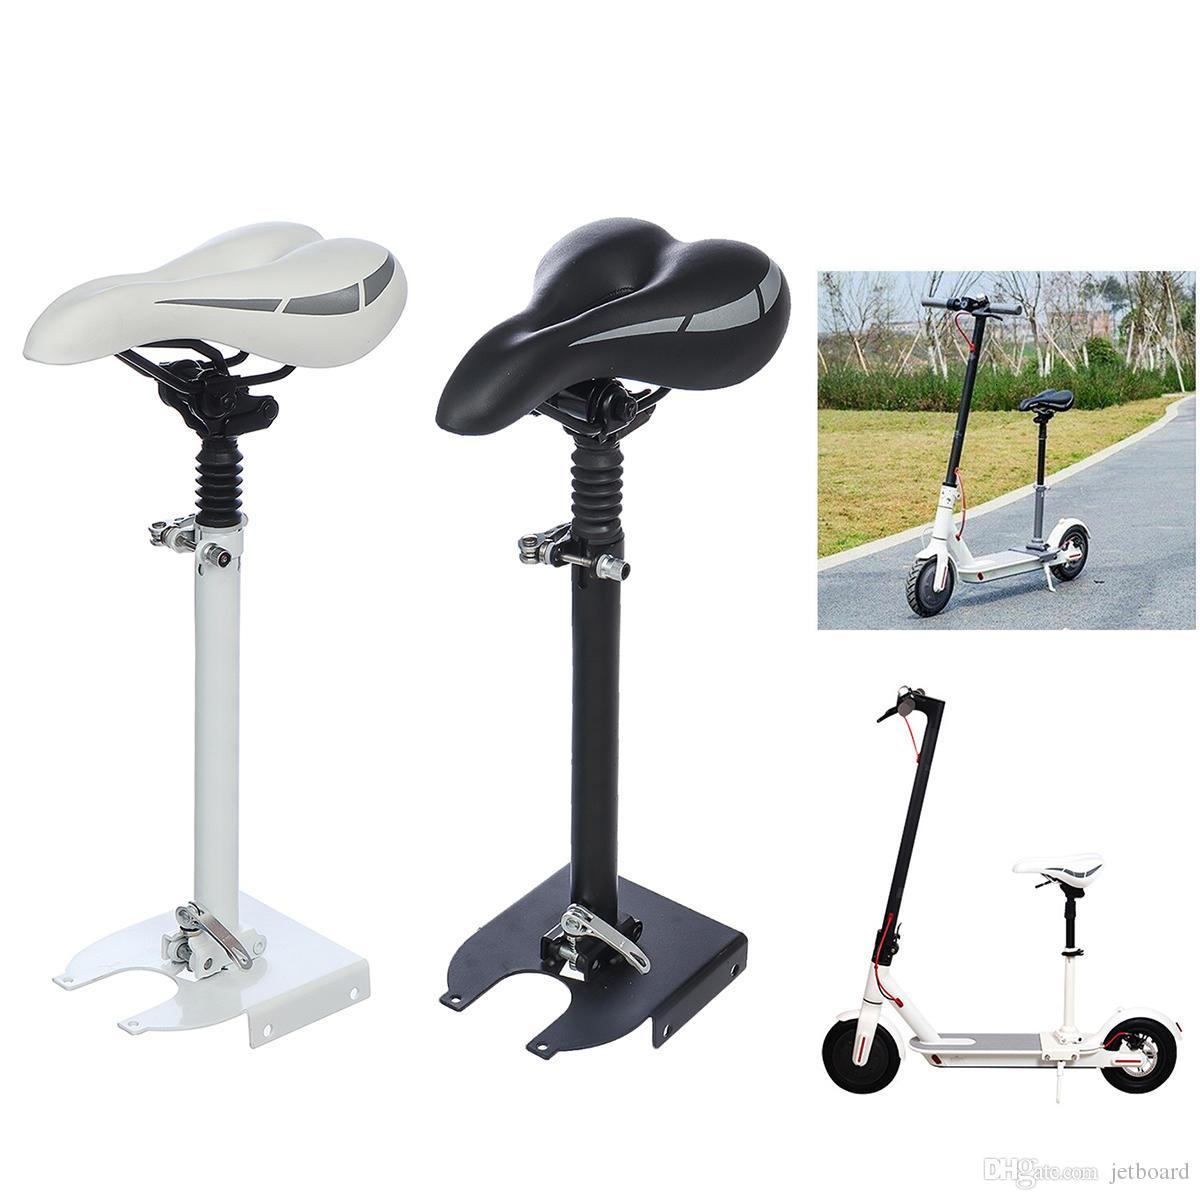 Adjustable Height Foldable Seat Saddle For Mijia M365 Electric Scooter - White